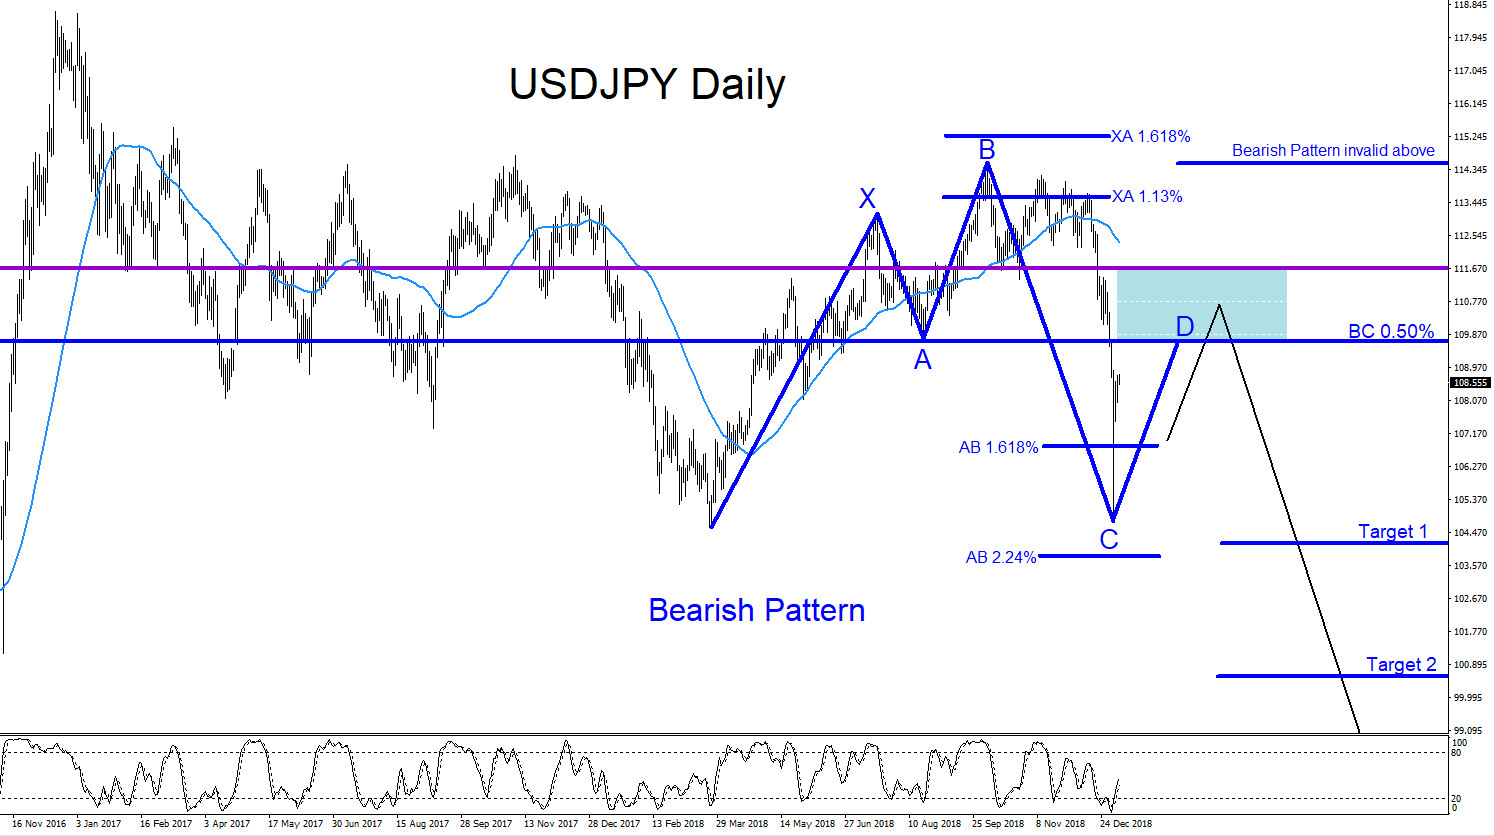 USDJPY, forex, elliottwave, elliott wave, technical analysis, bearish, patterns